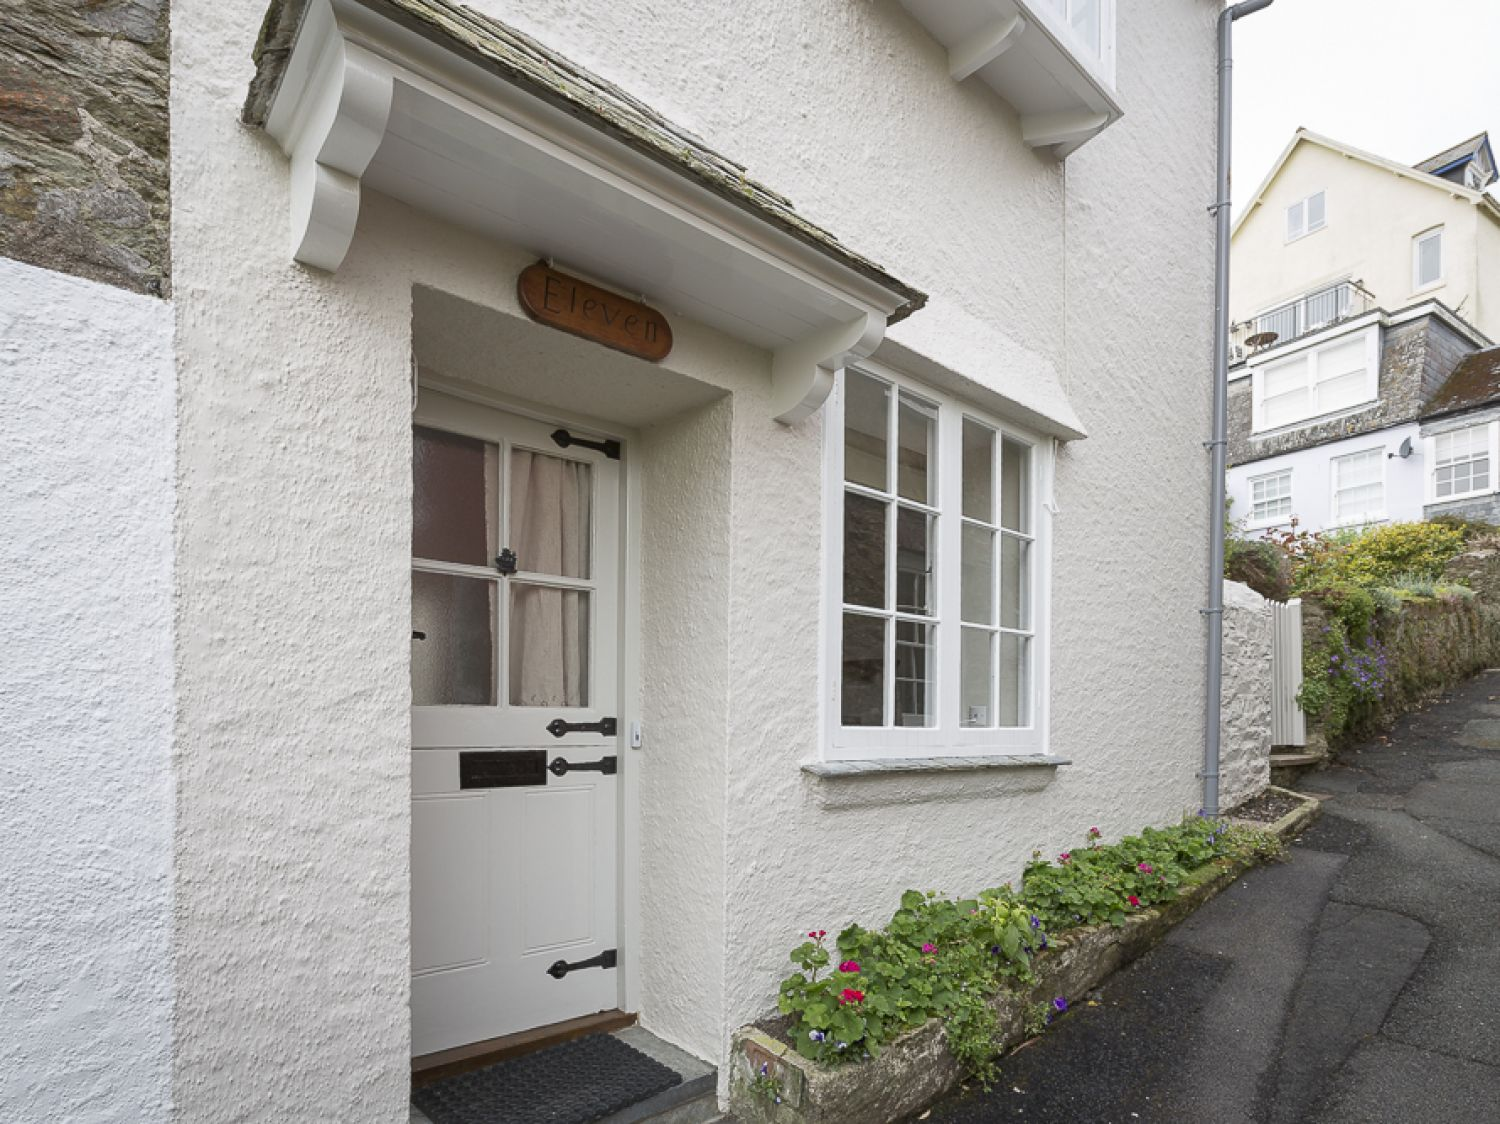 11 Robinsons Row - Devon - 994481 - photo 1